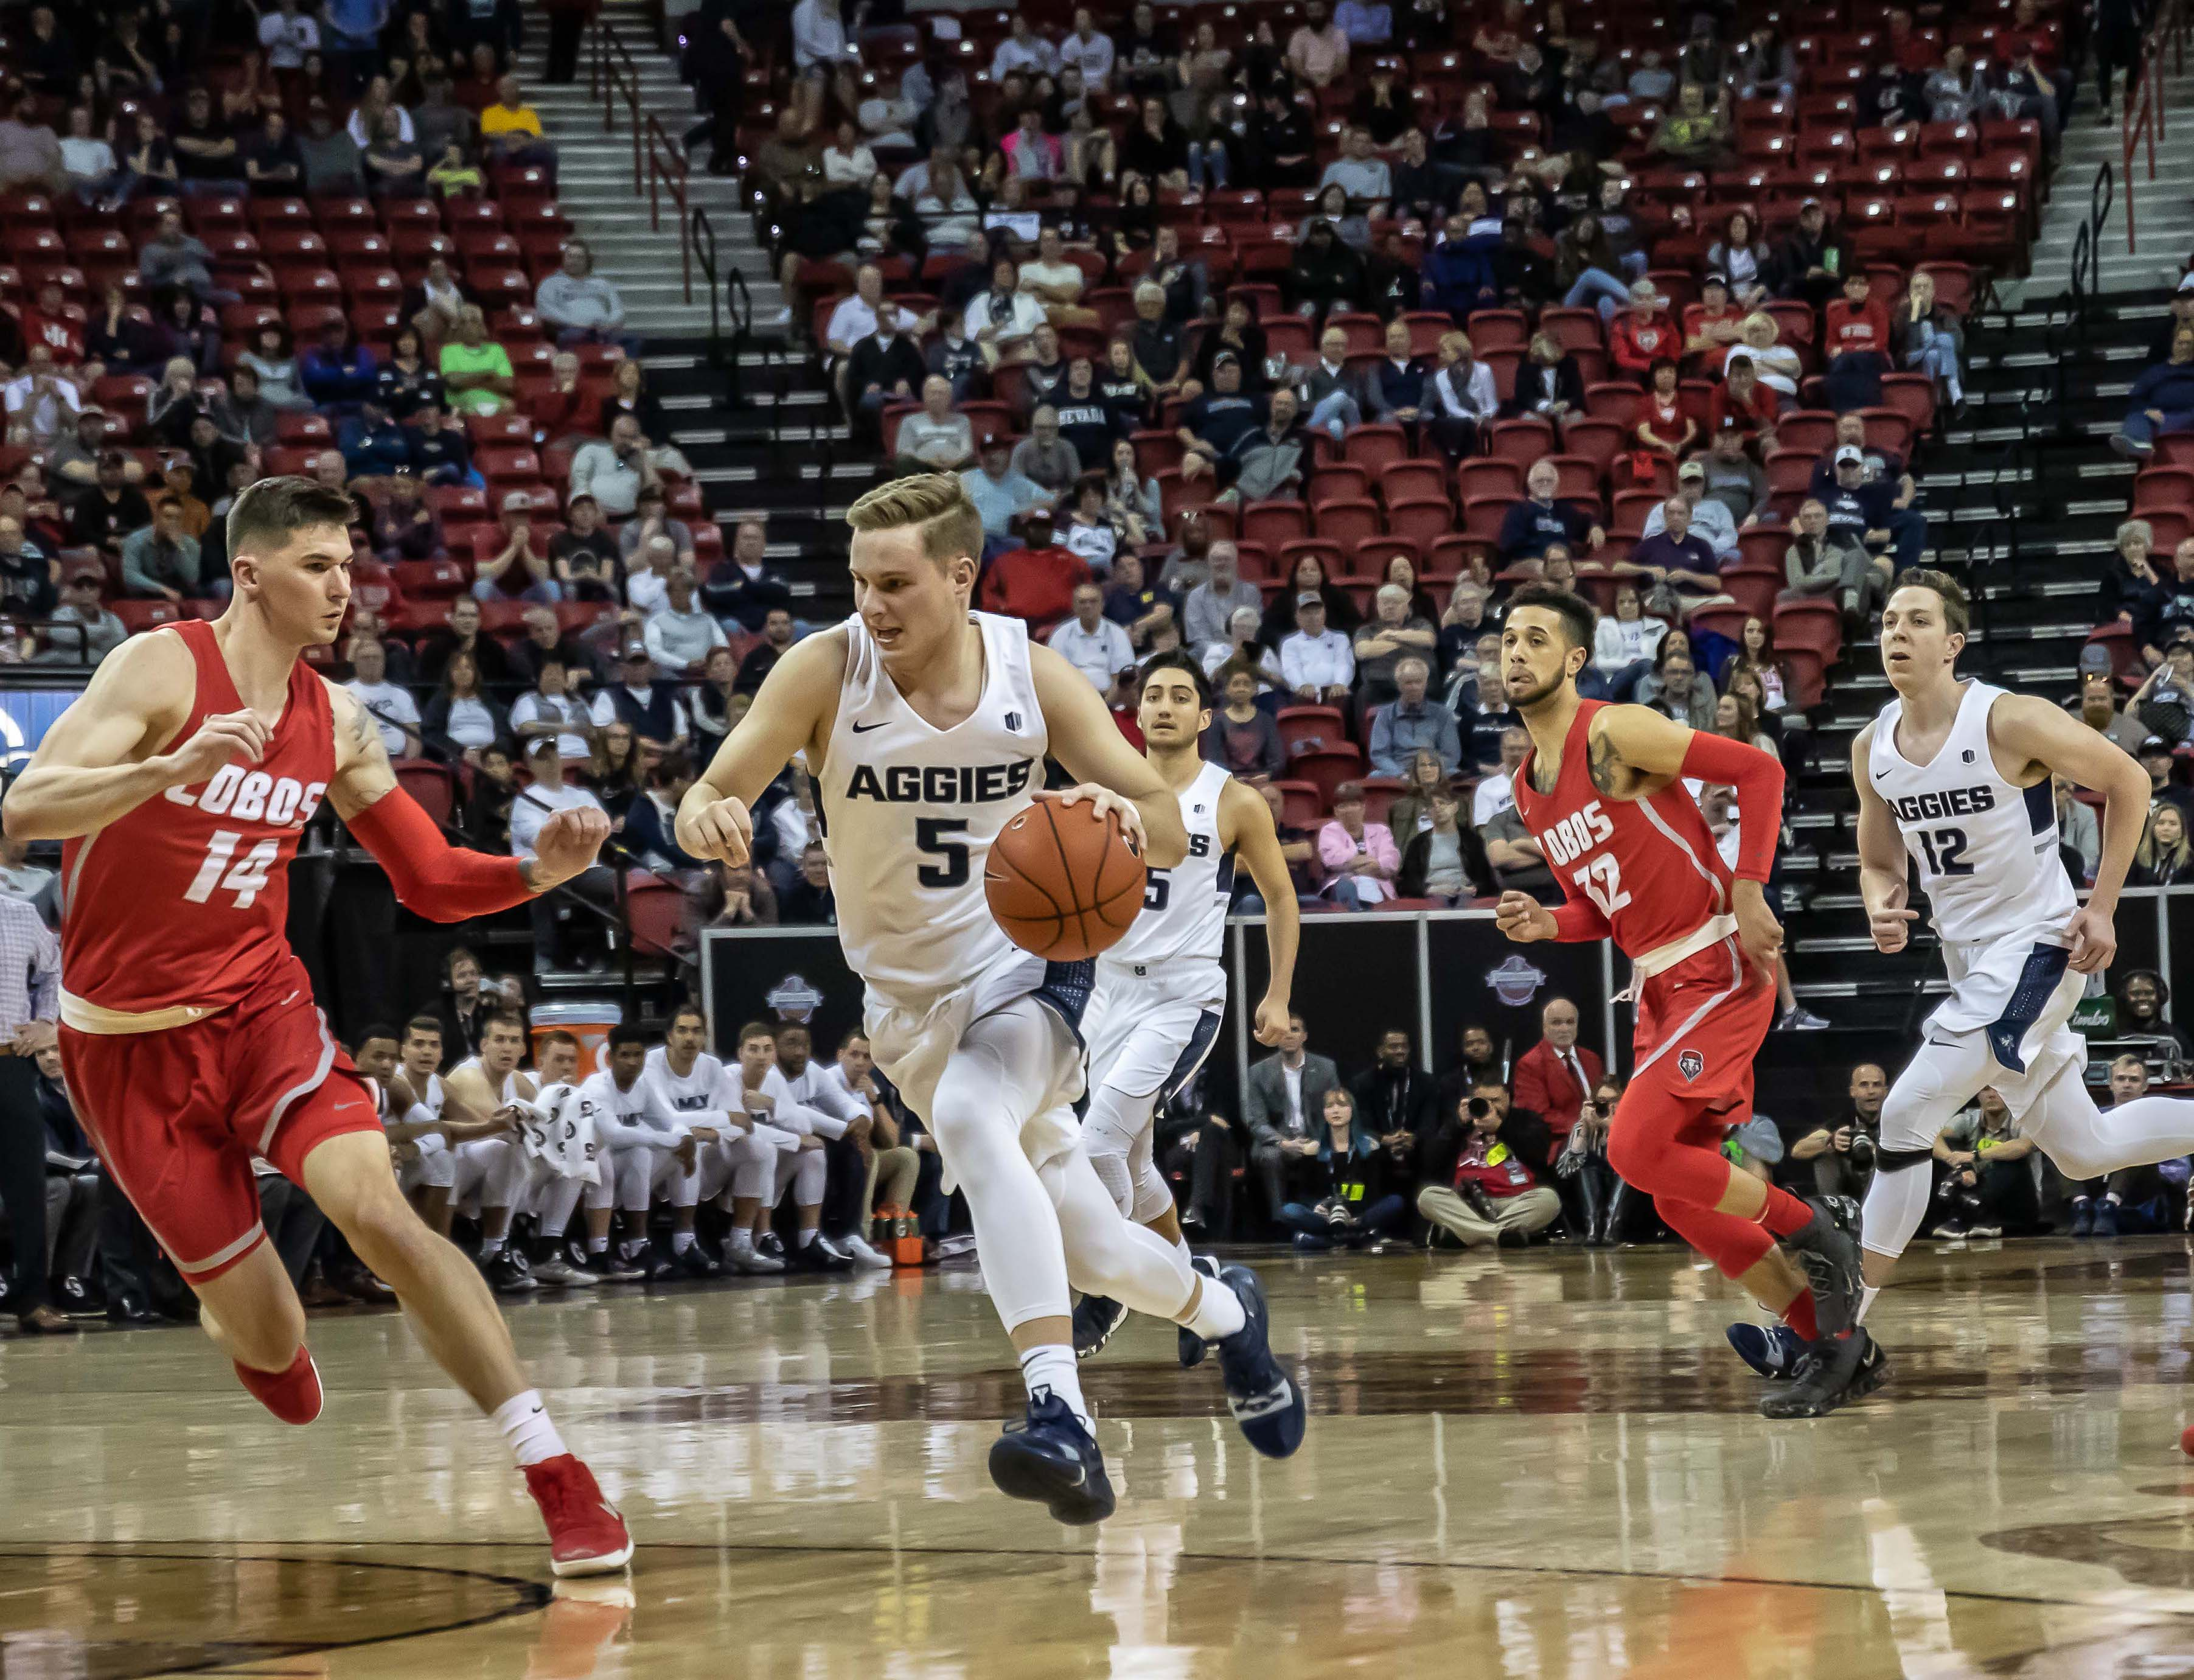 Returned missionary Sam Merrill drives with the ball during game between Merrill's Utah State Aggies and the New Mexico Lobos.